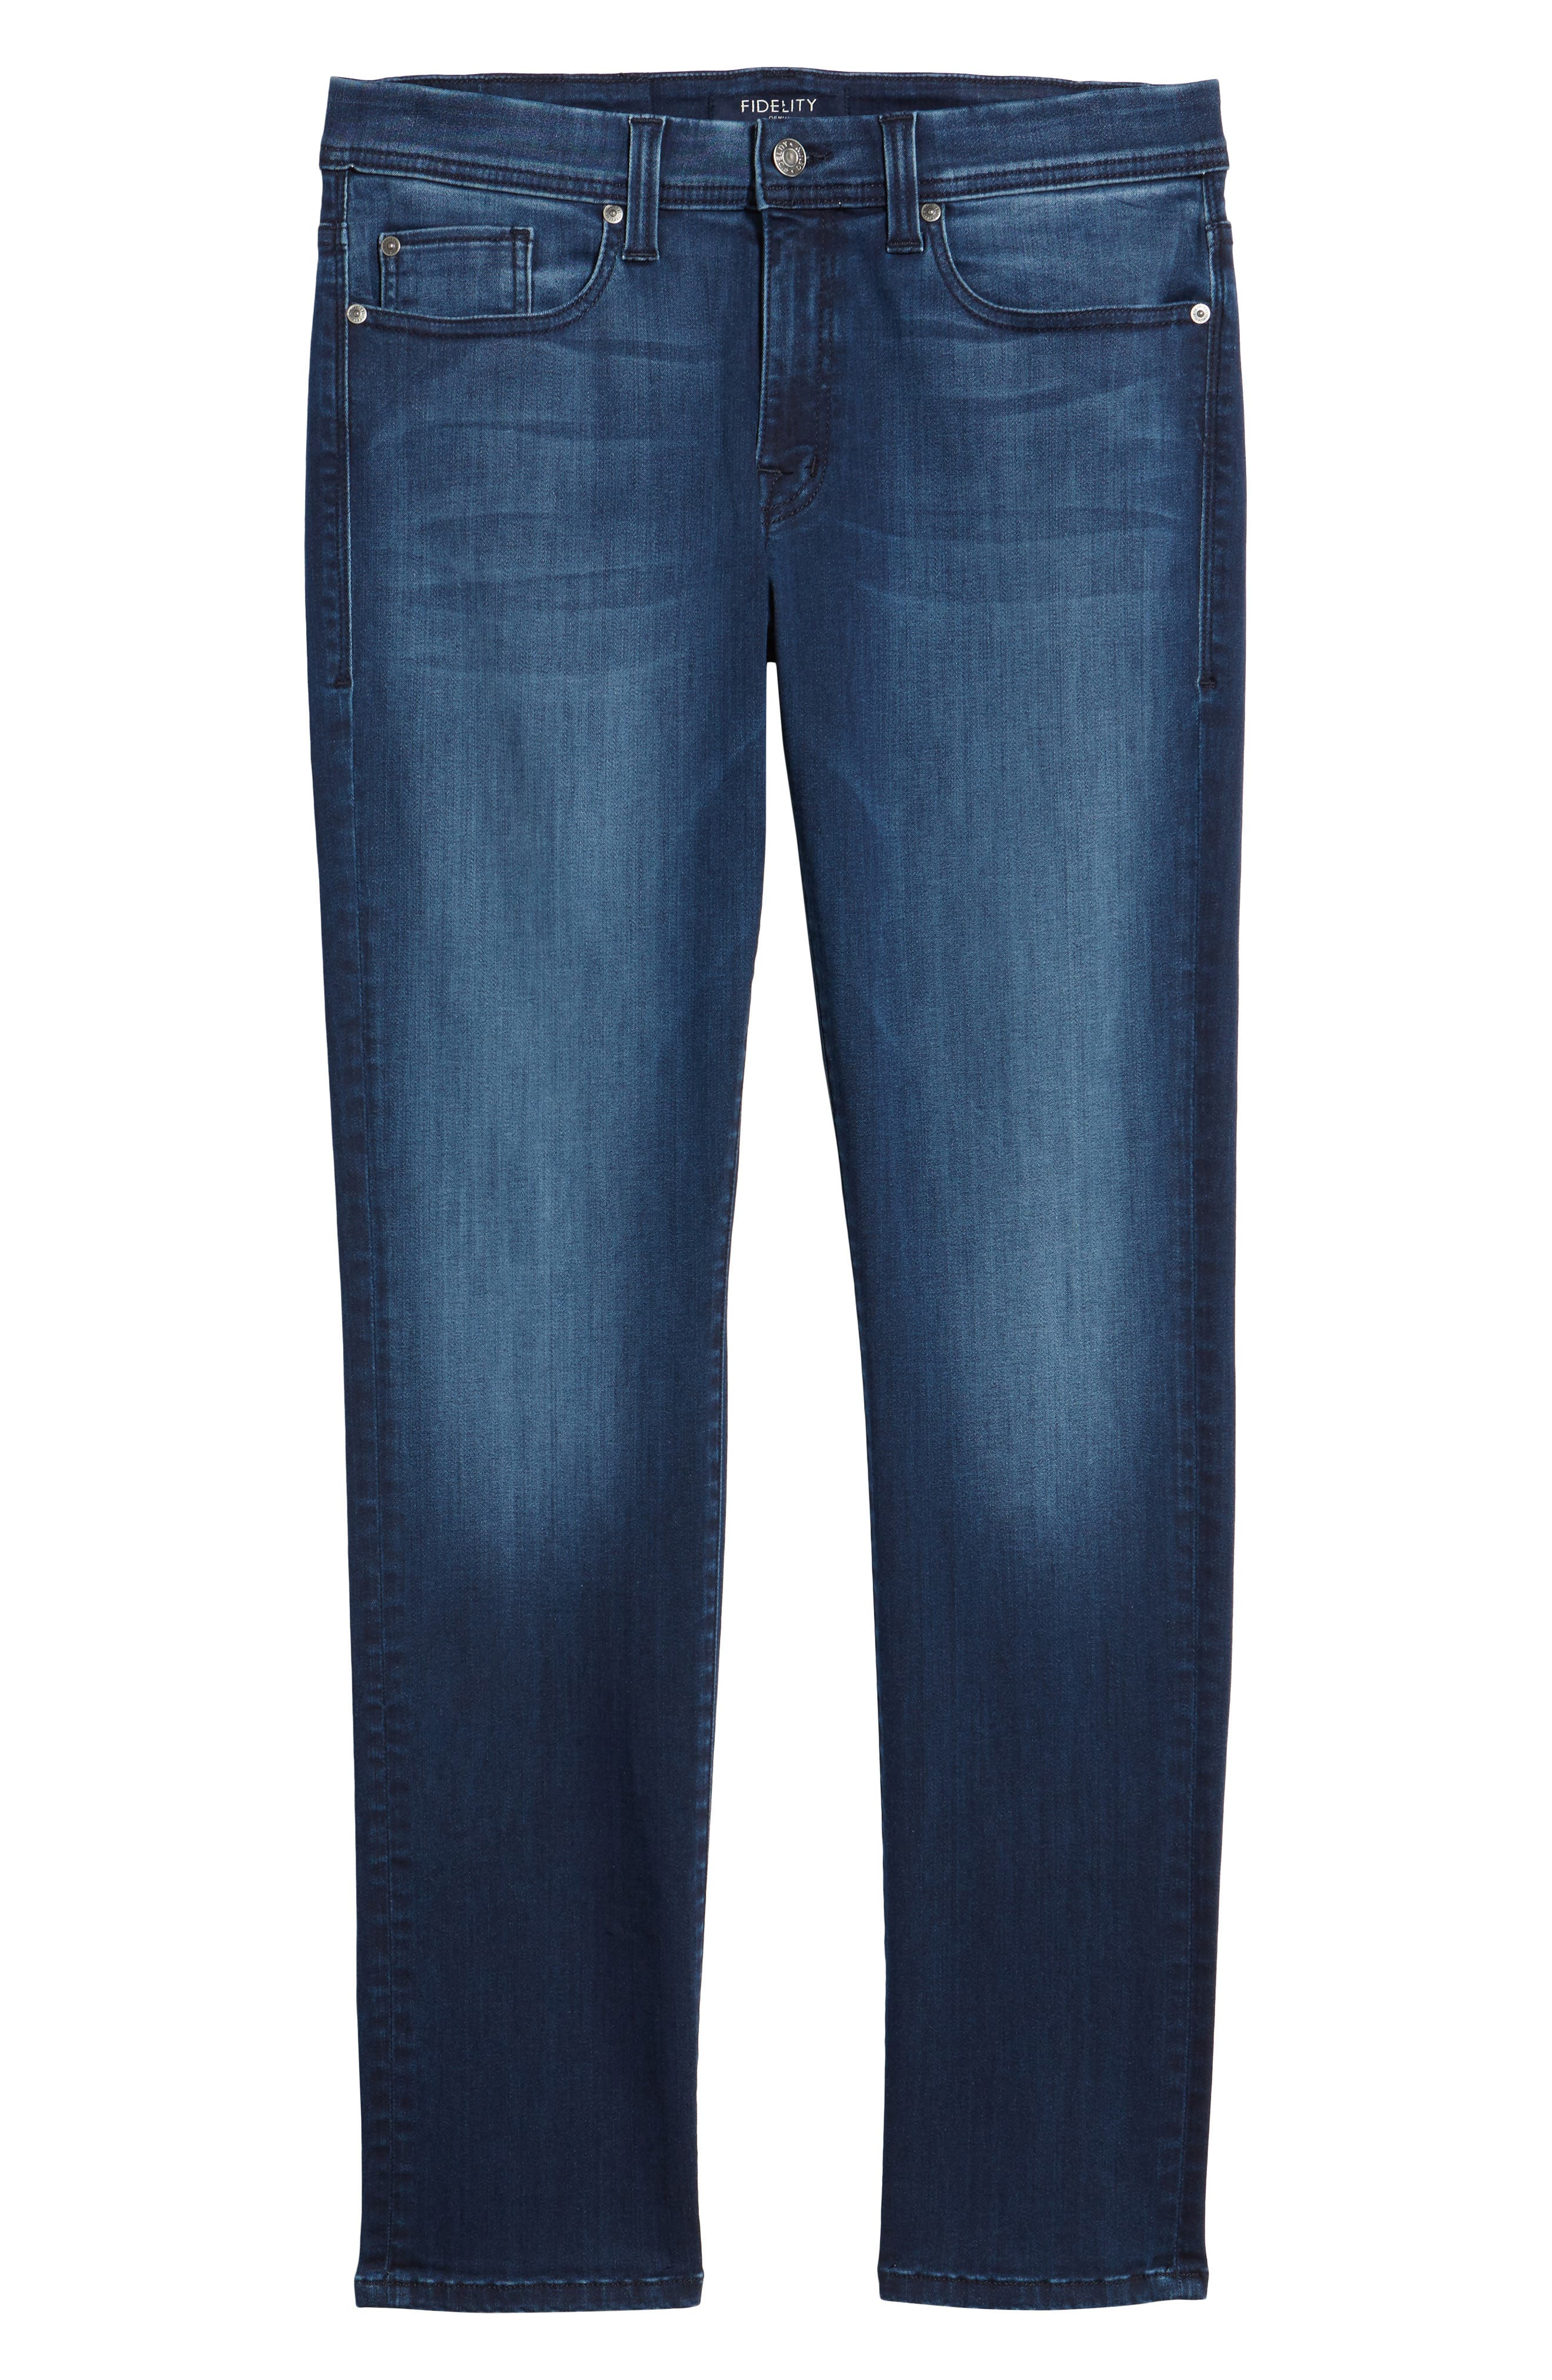 Jimmy Slim Straight Leg Jeans,                             Alternate thumbnail 6, color,                             Galaxy Blue